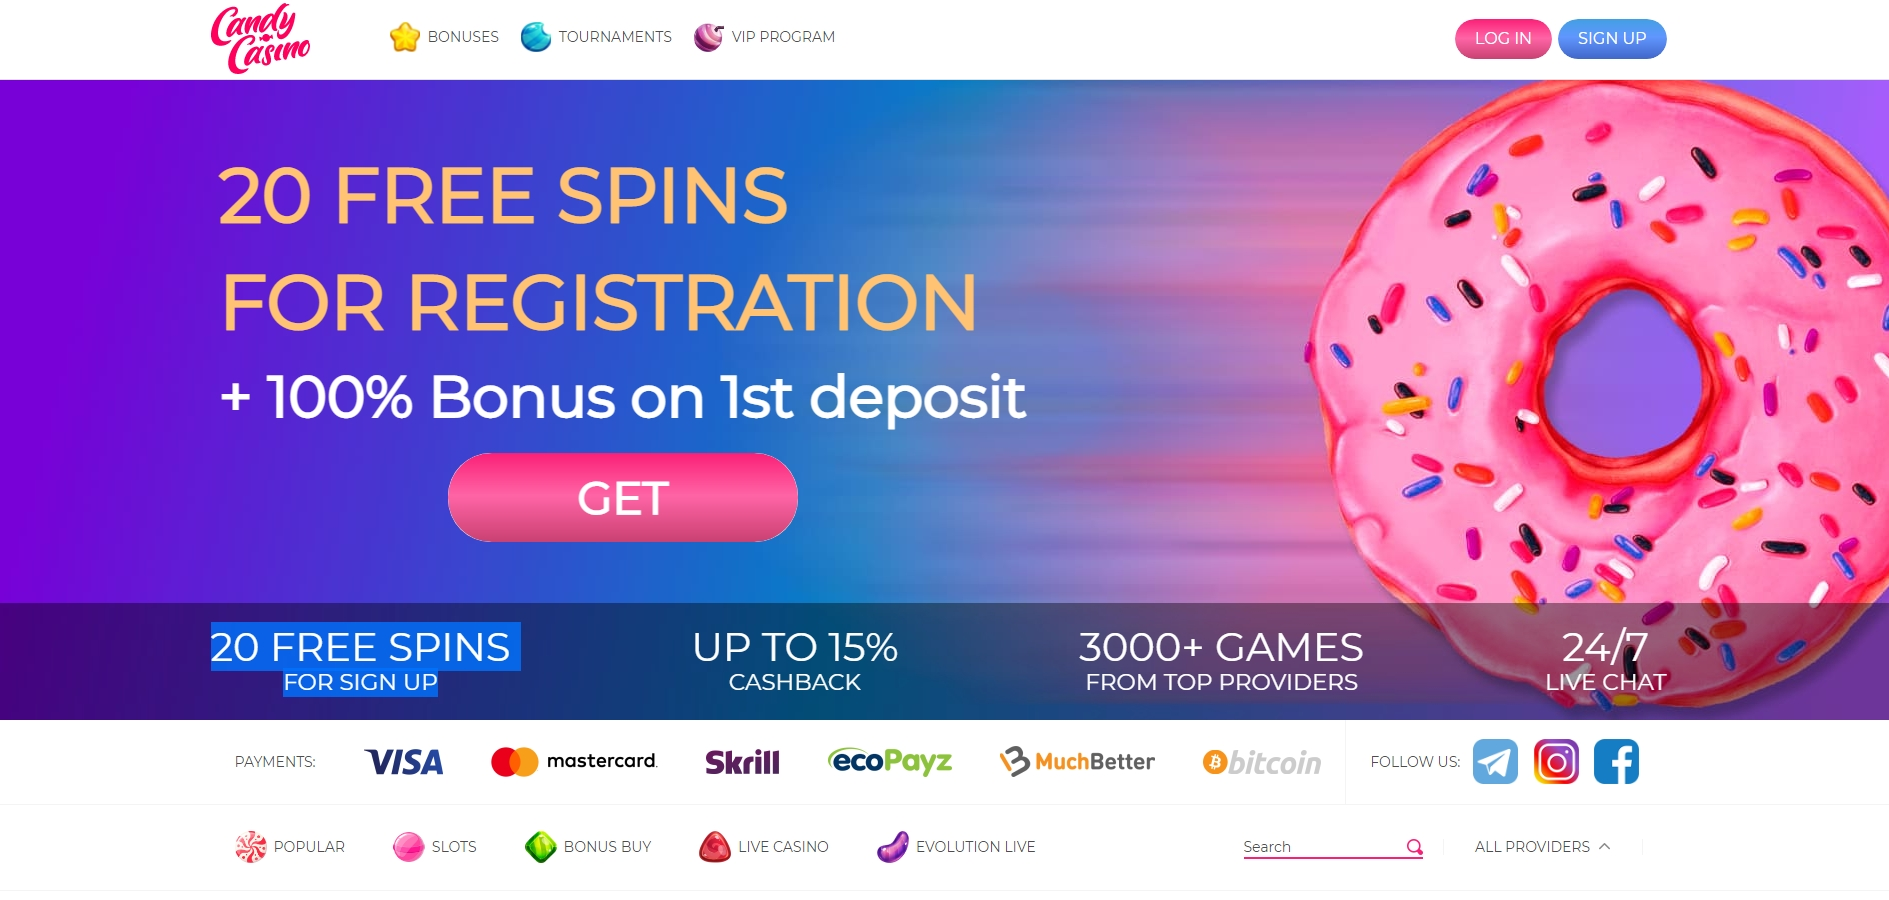 Candy_casino_20_Free_Spins